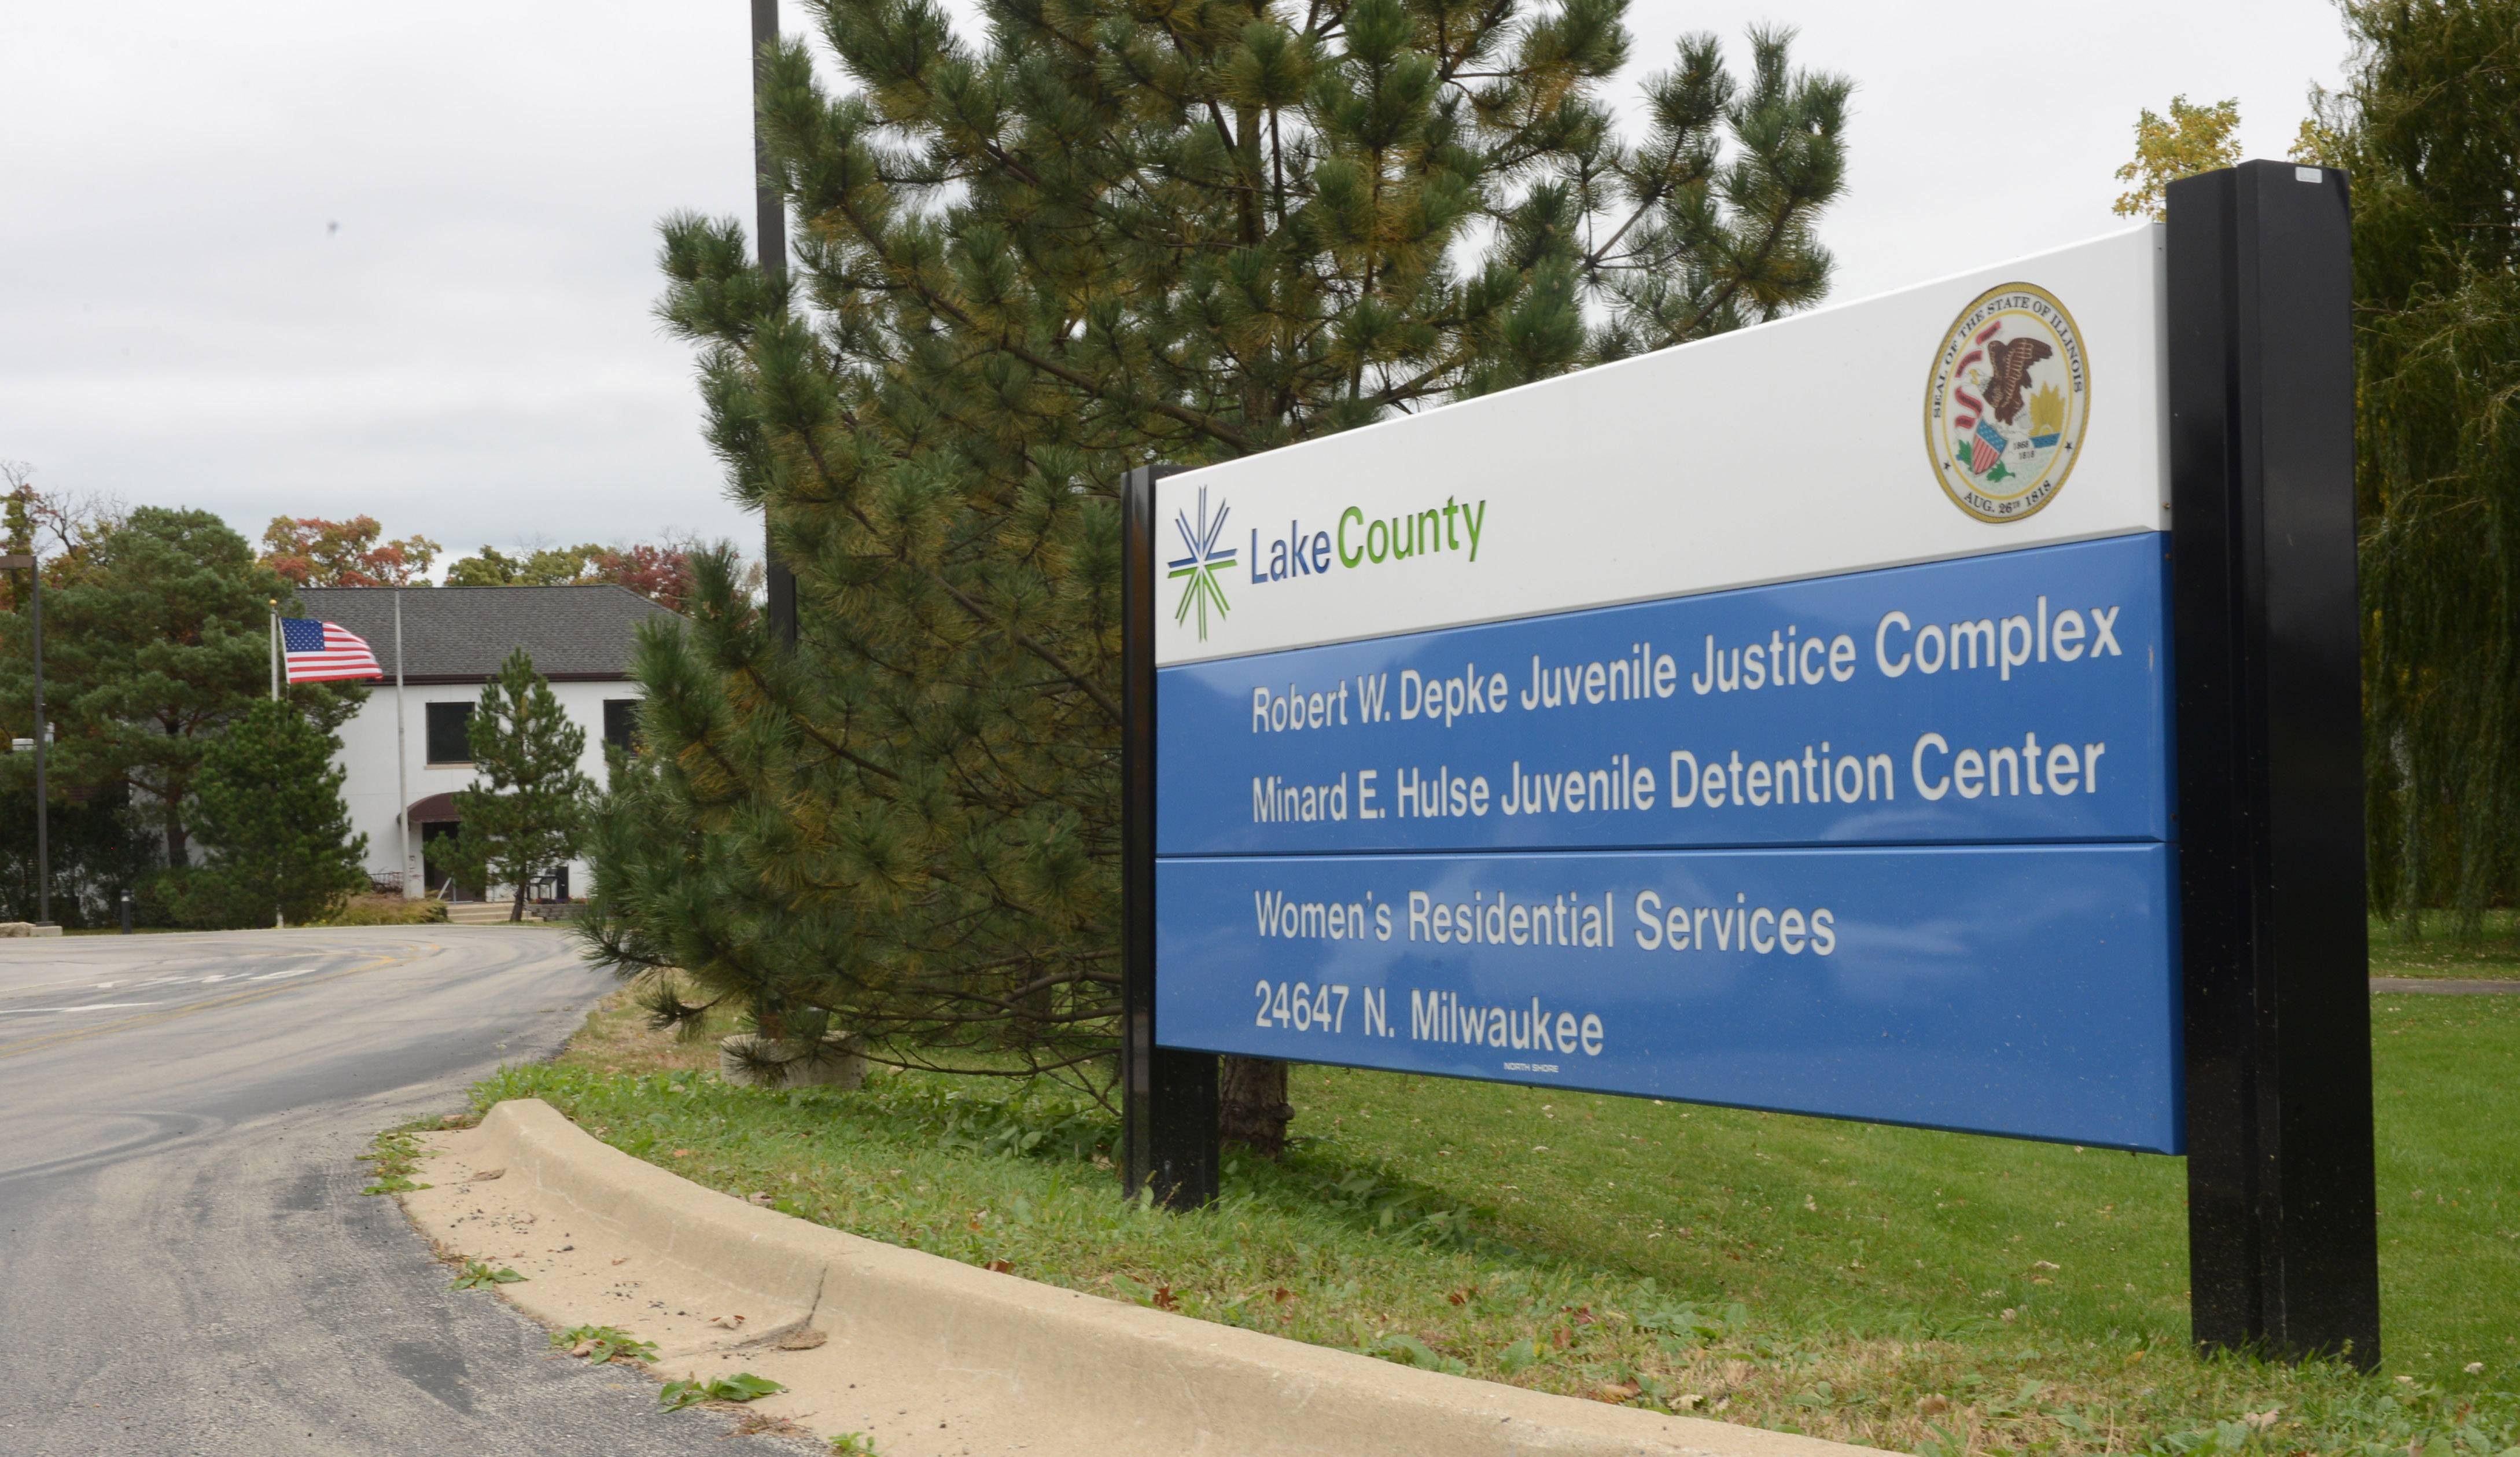 Expansion coming to Lake County juvenile center